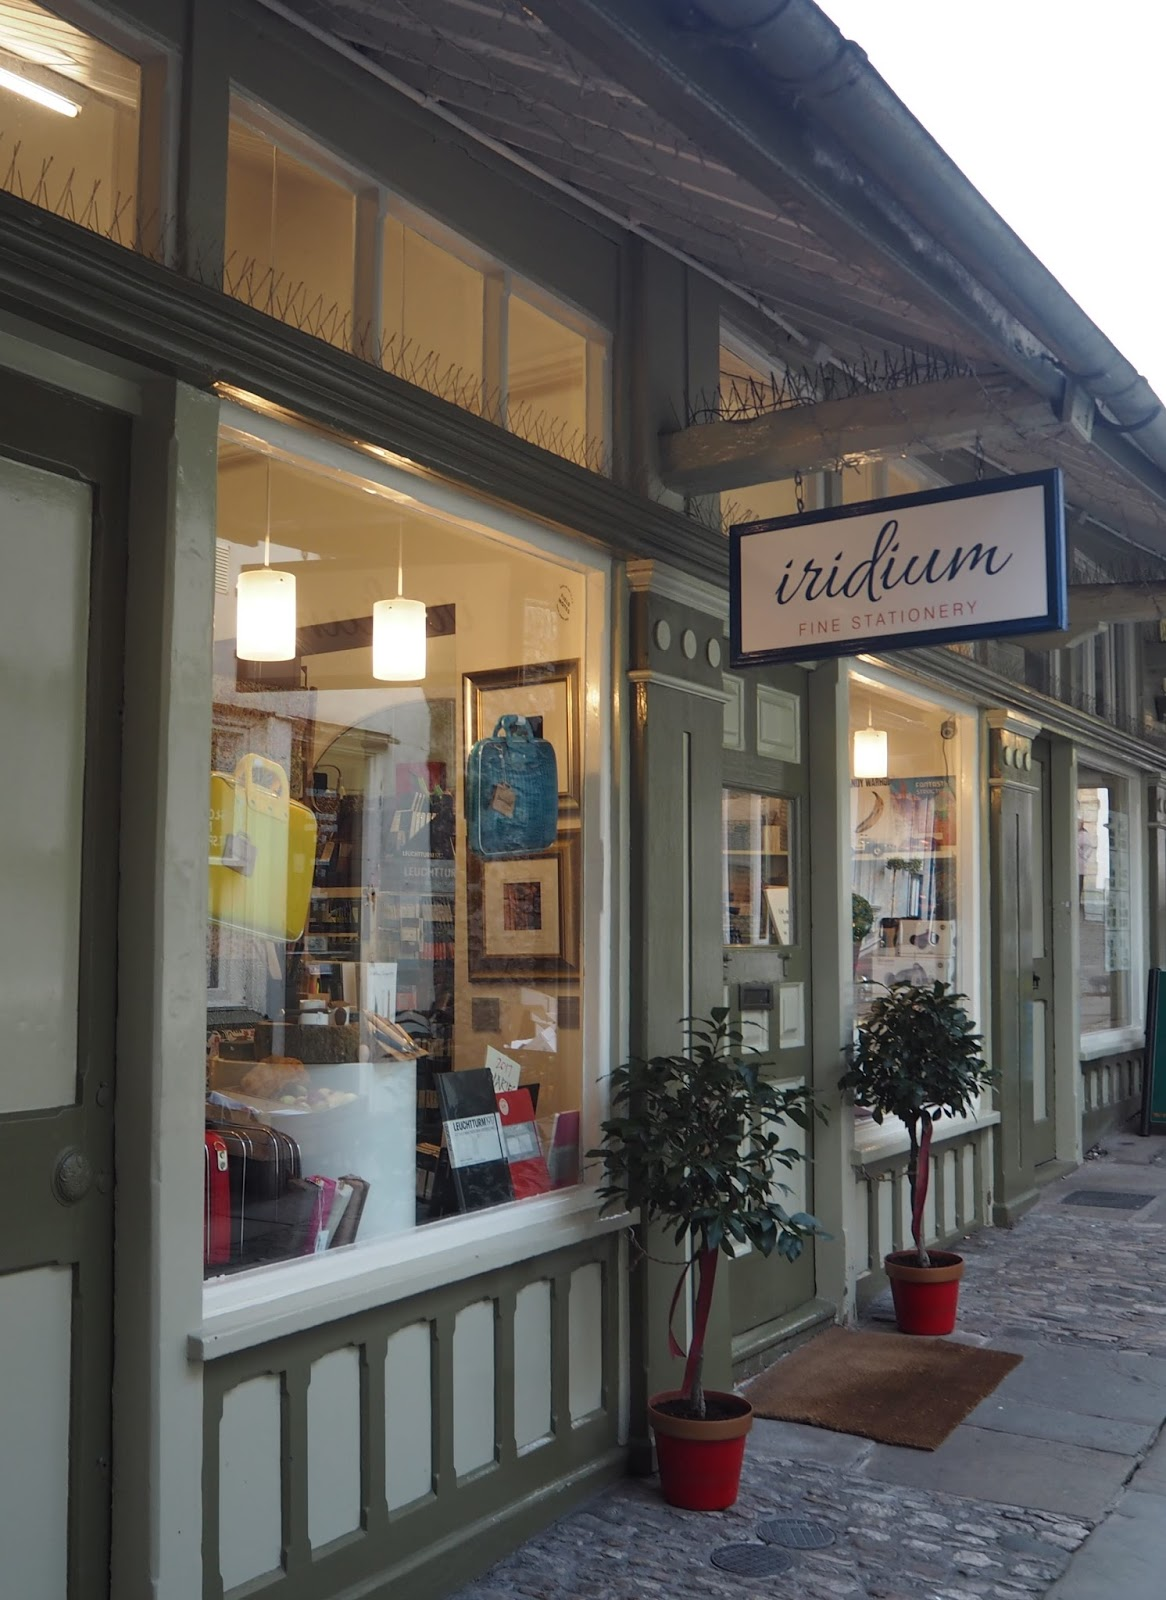 Iridium Fine Stationery, Kendal